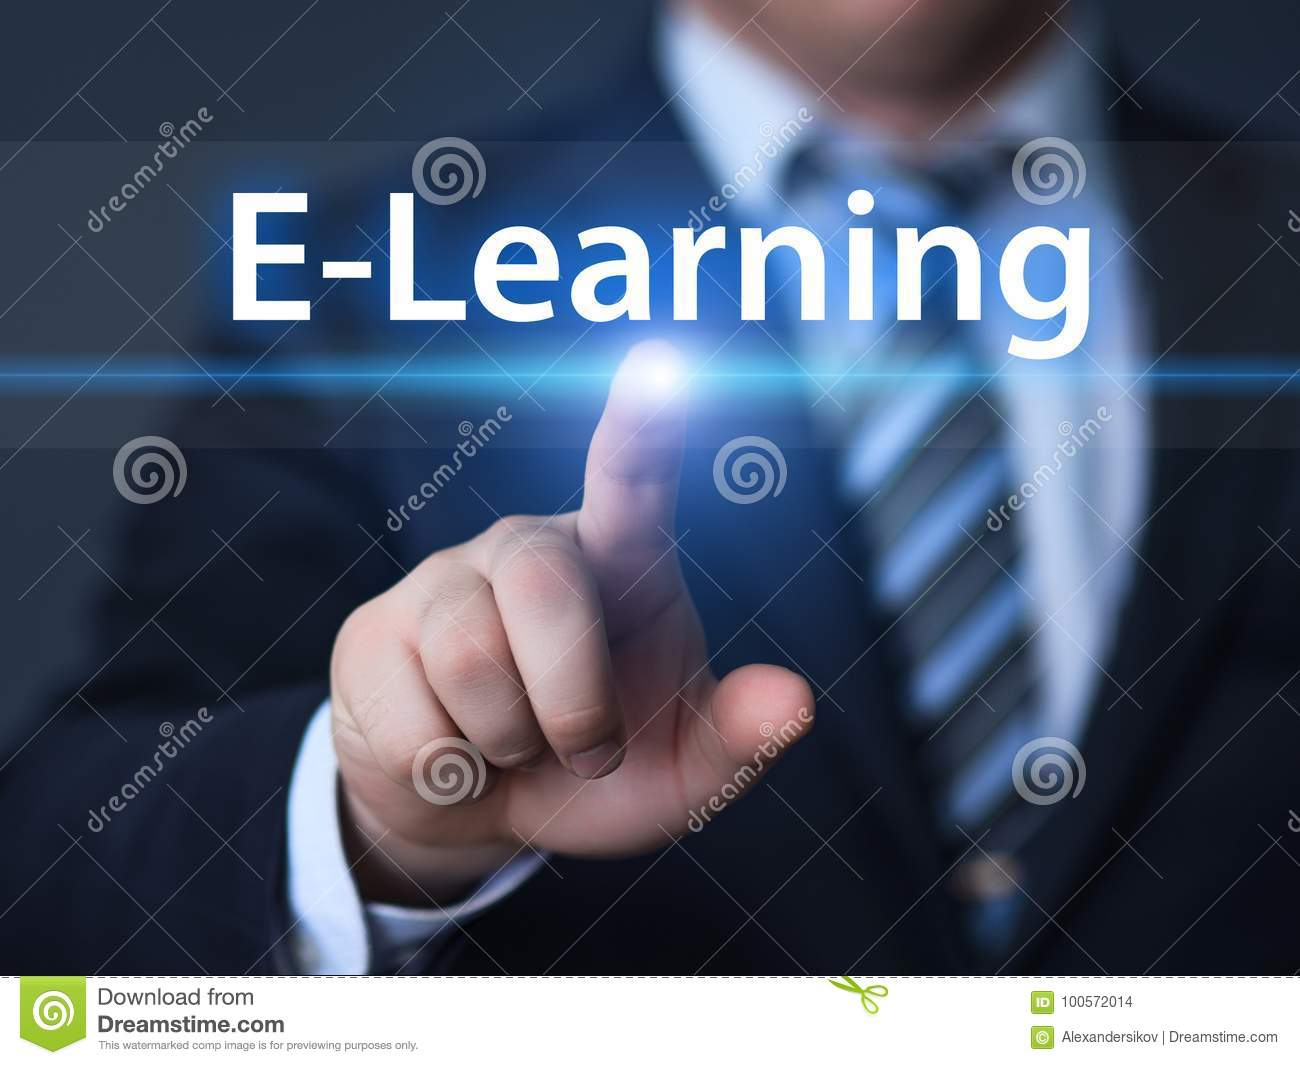 E-learning Education Internet Technology Webinar Online Courses concept